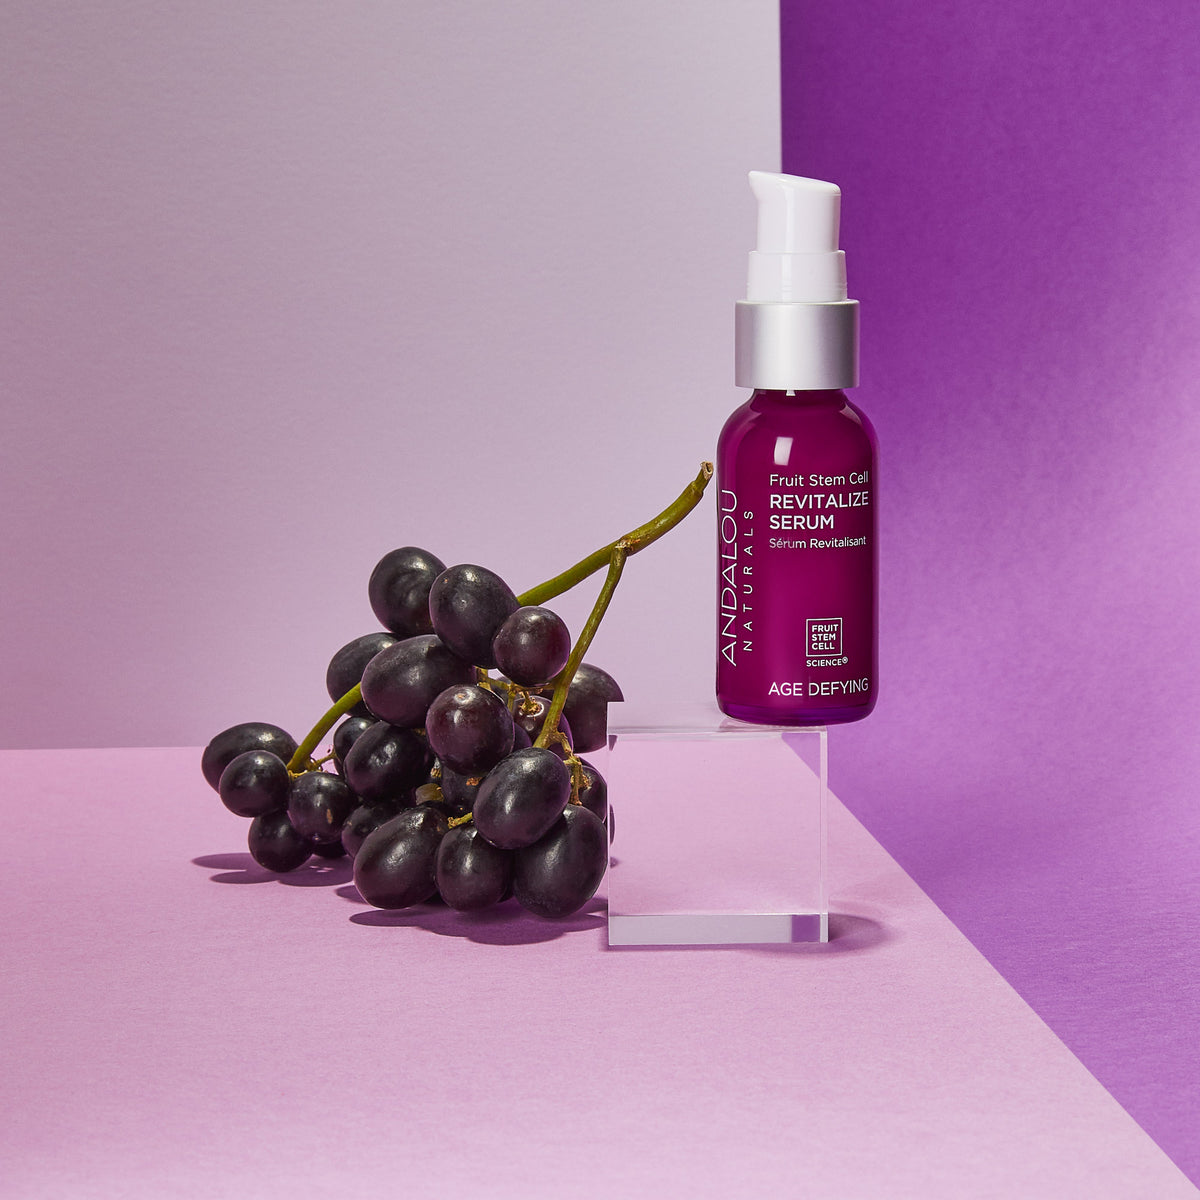 Age Defying Fruit Stem Cell Revitalize Serum bottle with concord grapes